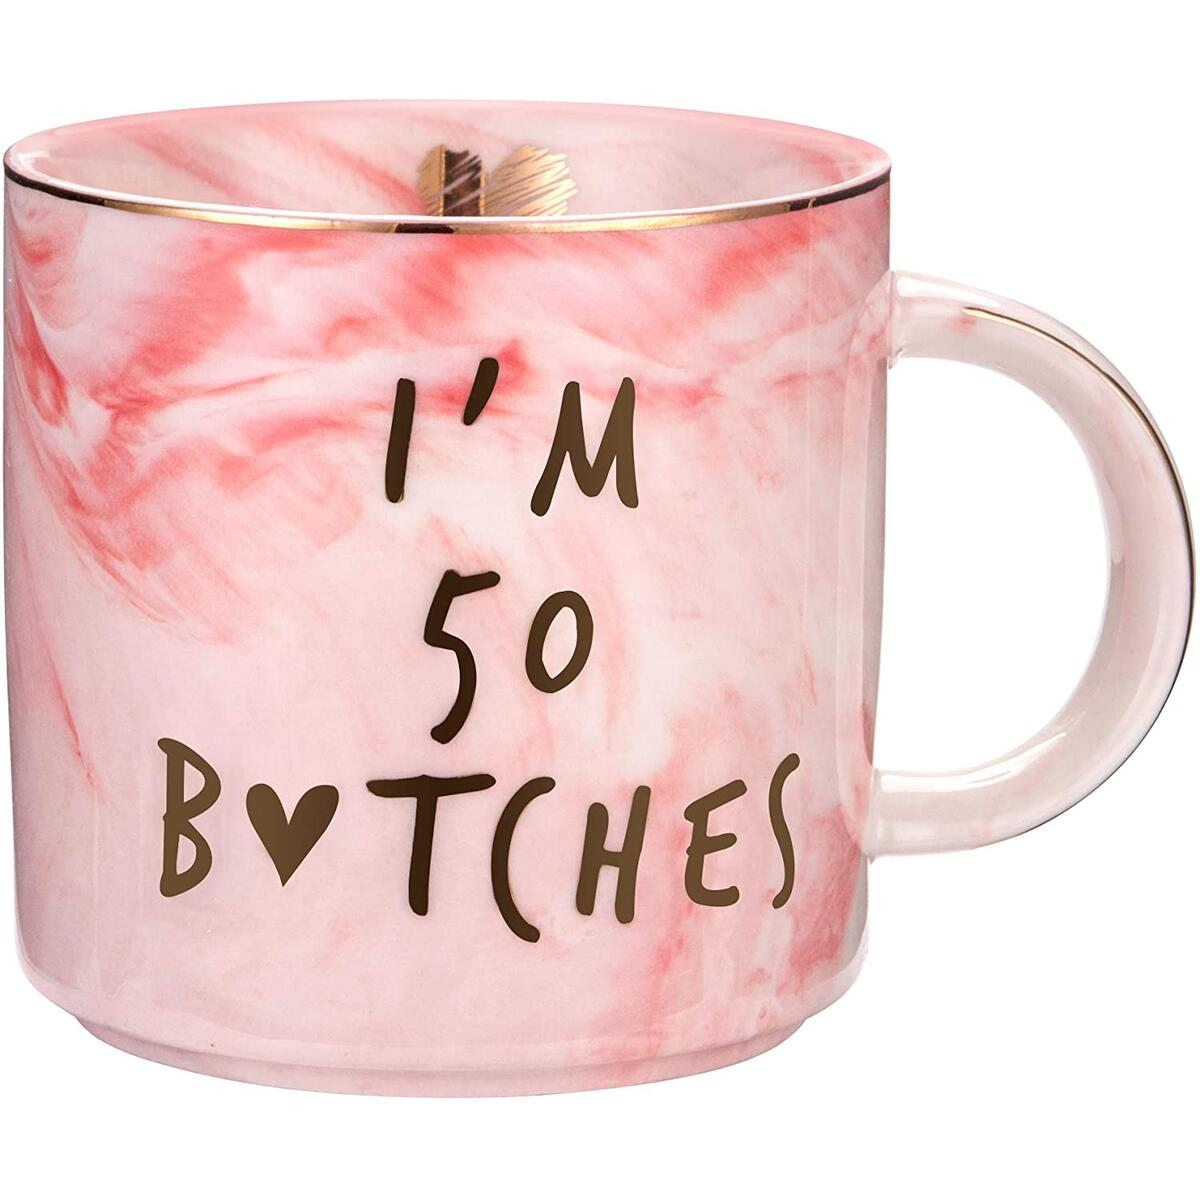 I'm 50 - Funny 50th Birthday Gifts for Women - Best Turning 50 Year Old Birthday Gifts Ideas for Women, Wife, Mom, Daughter, Sister, Aunt, Best Friends, BFF, Coworkers, Her - Ceramic Coffee Cup…